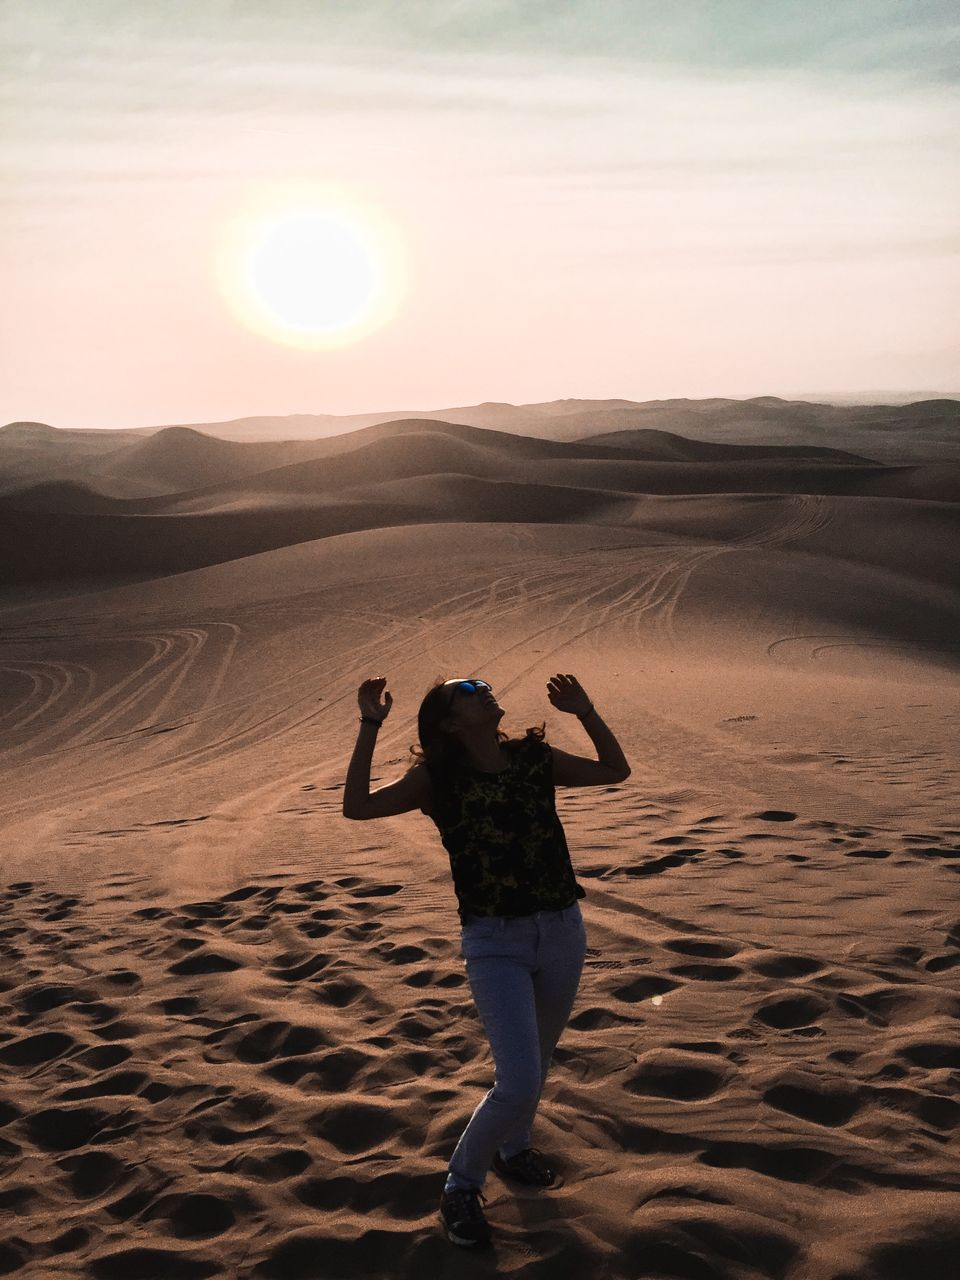 real people, beauty in nature, land, lifestyles, sky, leisure activity, one person, scenics - nature, sand, rear view, tranquility, nature, tranquil scene, sunset, sun, sunlight, full length, non-urban scene, men, arid climate, outdoors, climate, human arm